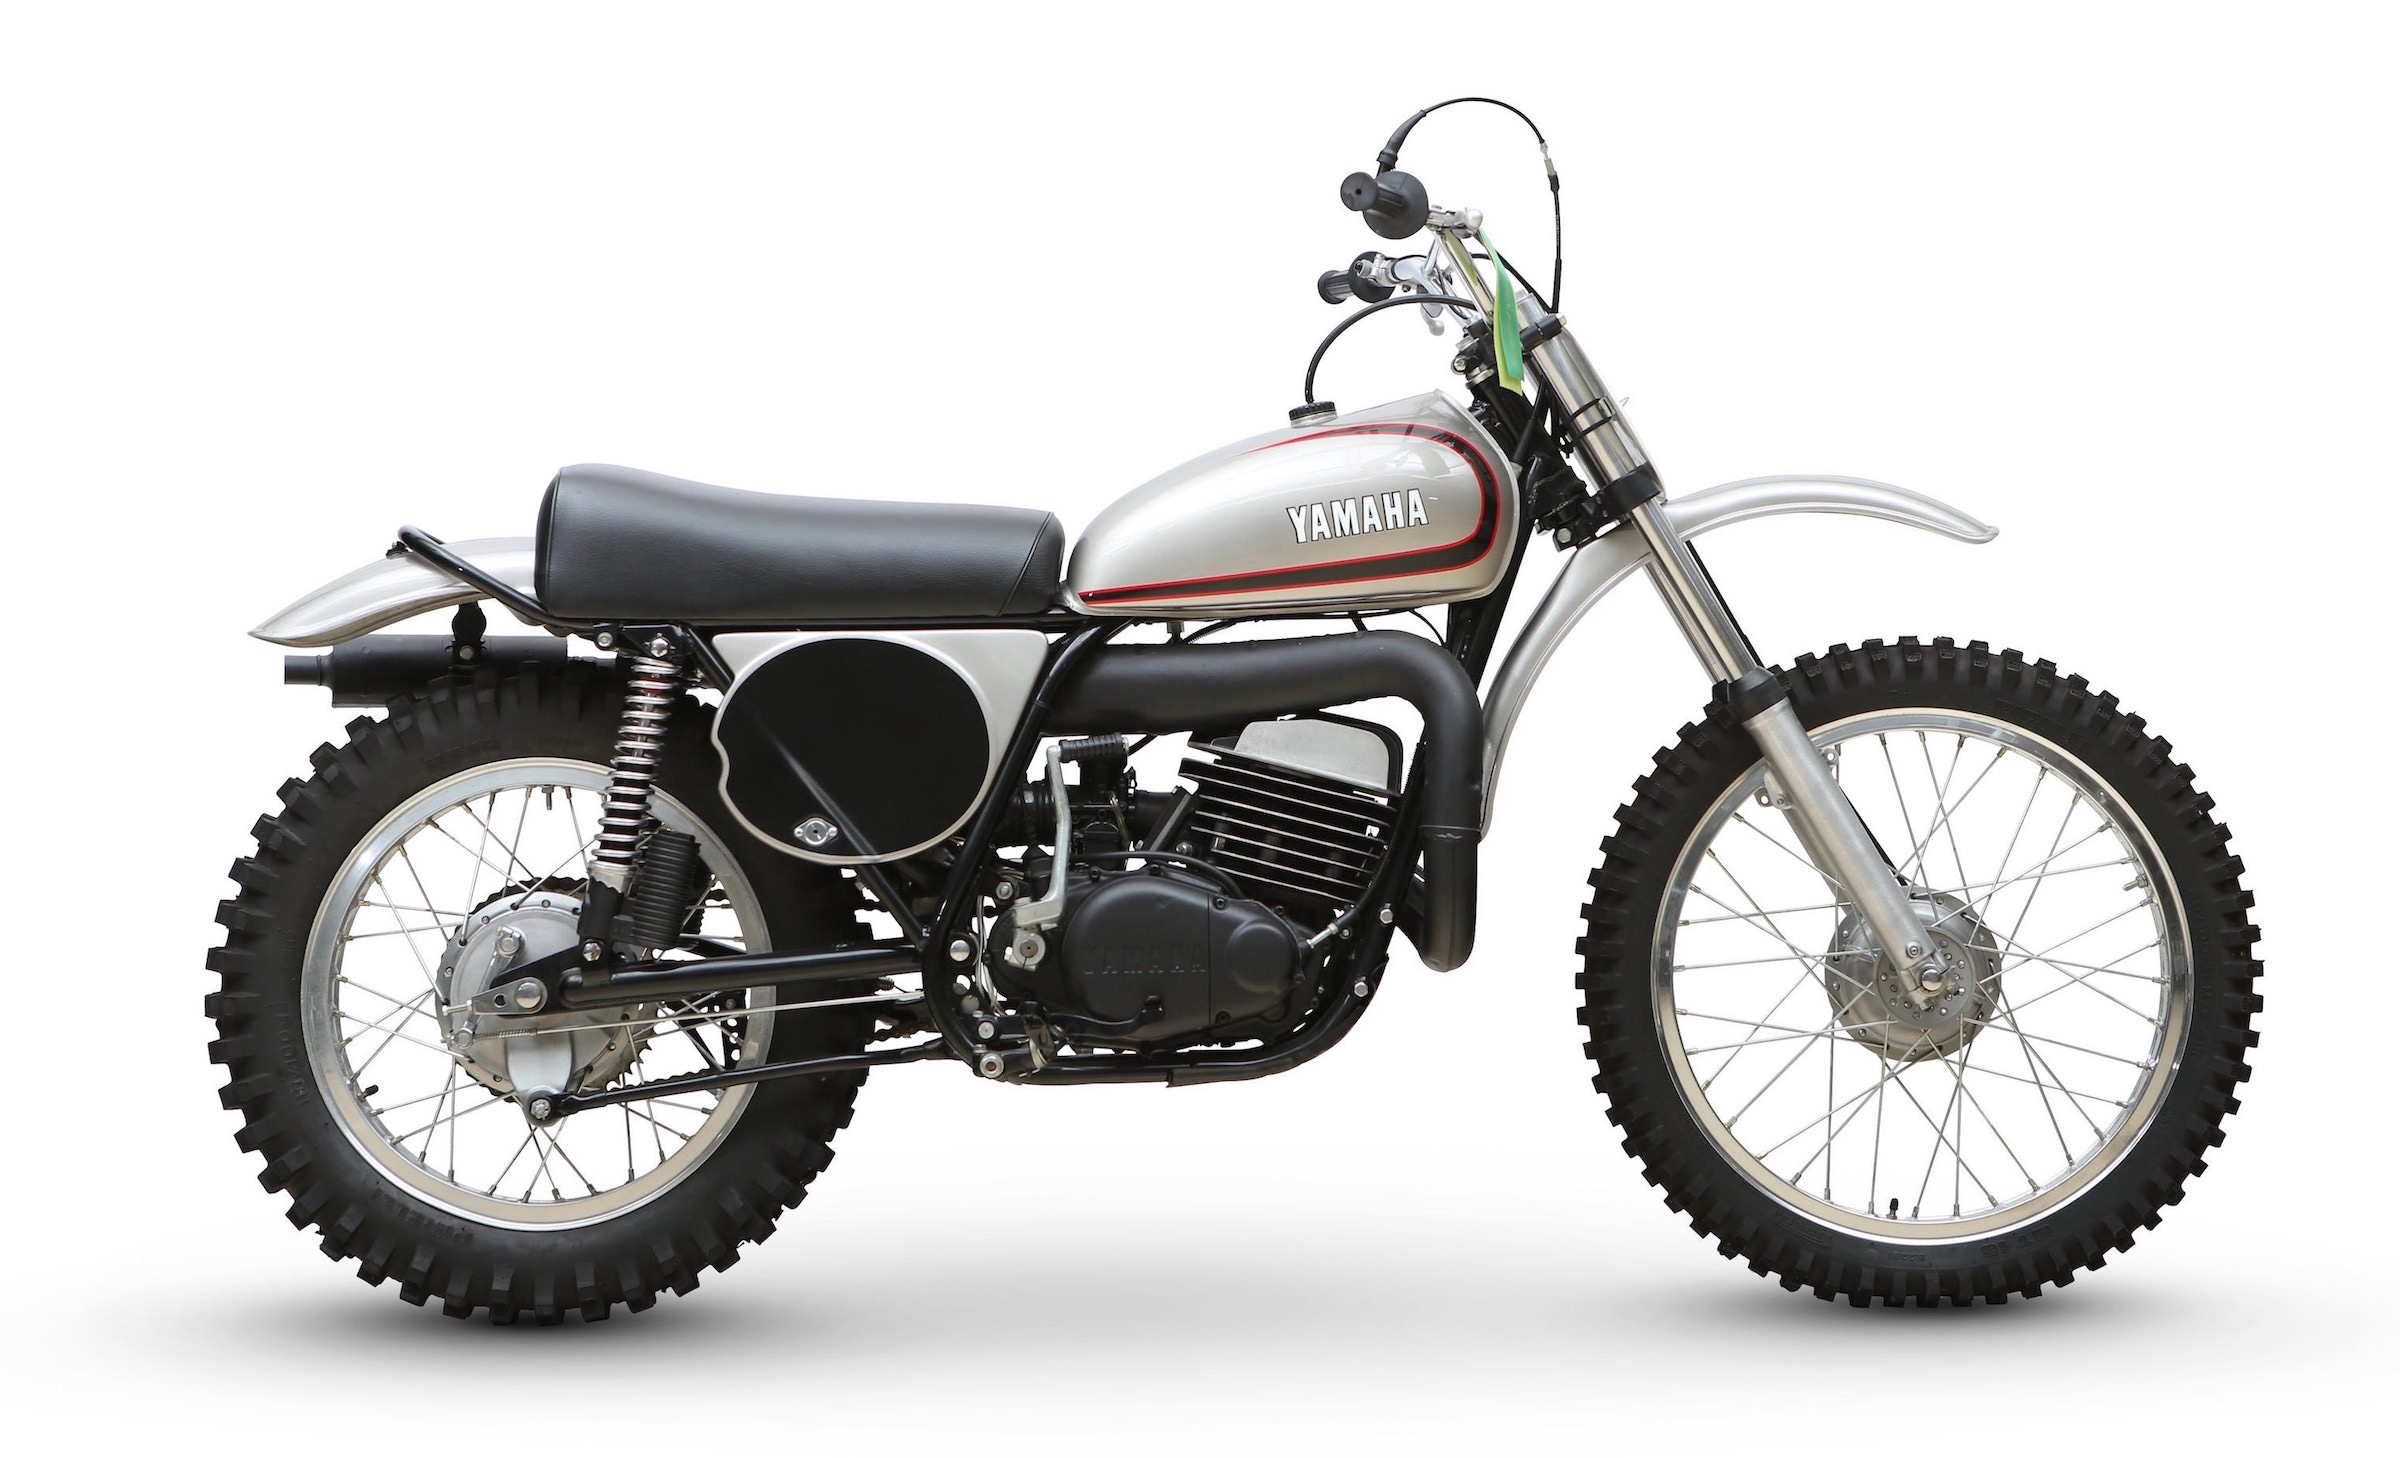 yamaha sc500 the original japanese motocross widowmaker. Black Bedroom Furniture Sets. Home Design Ideas